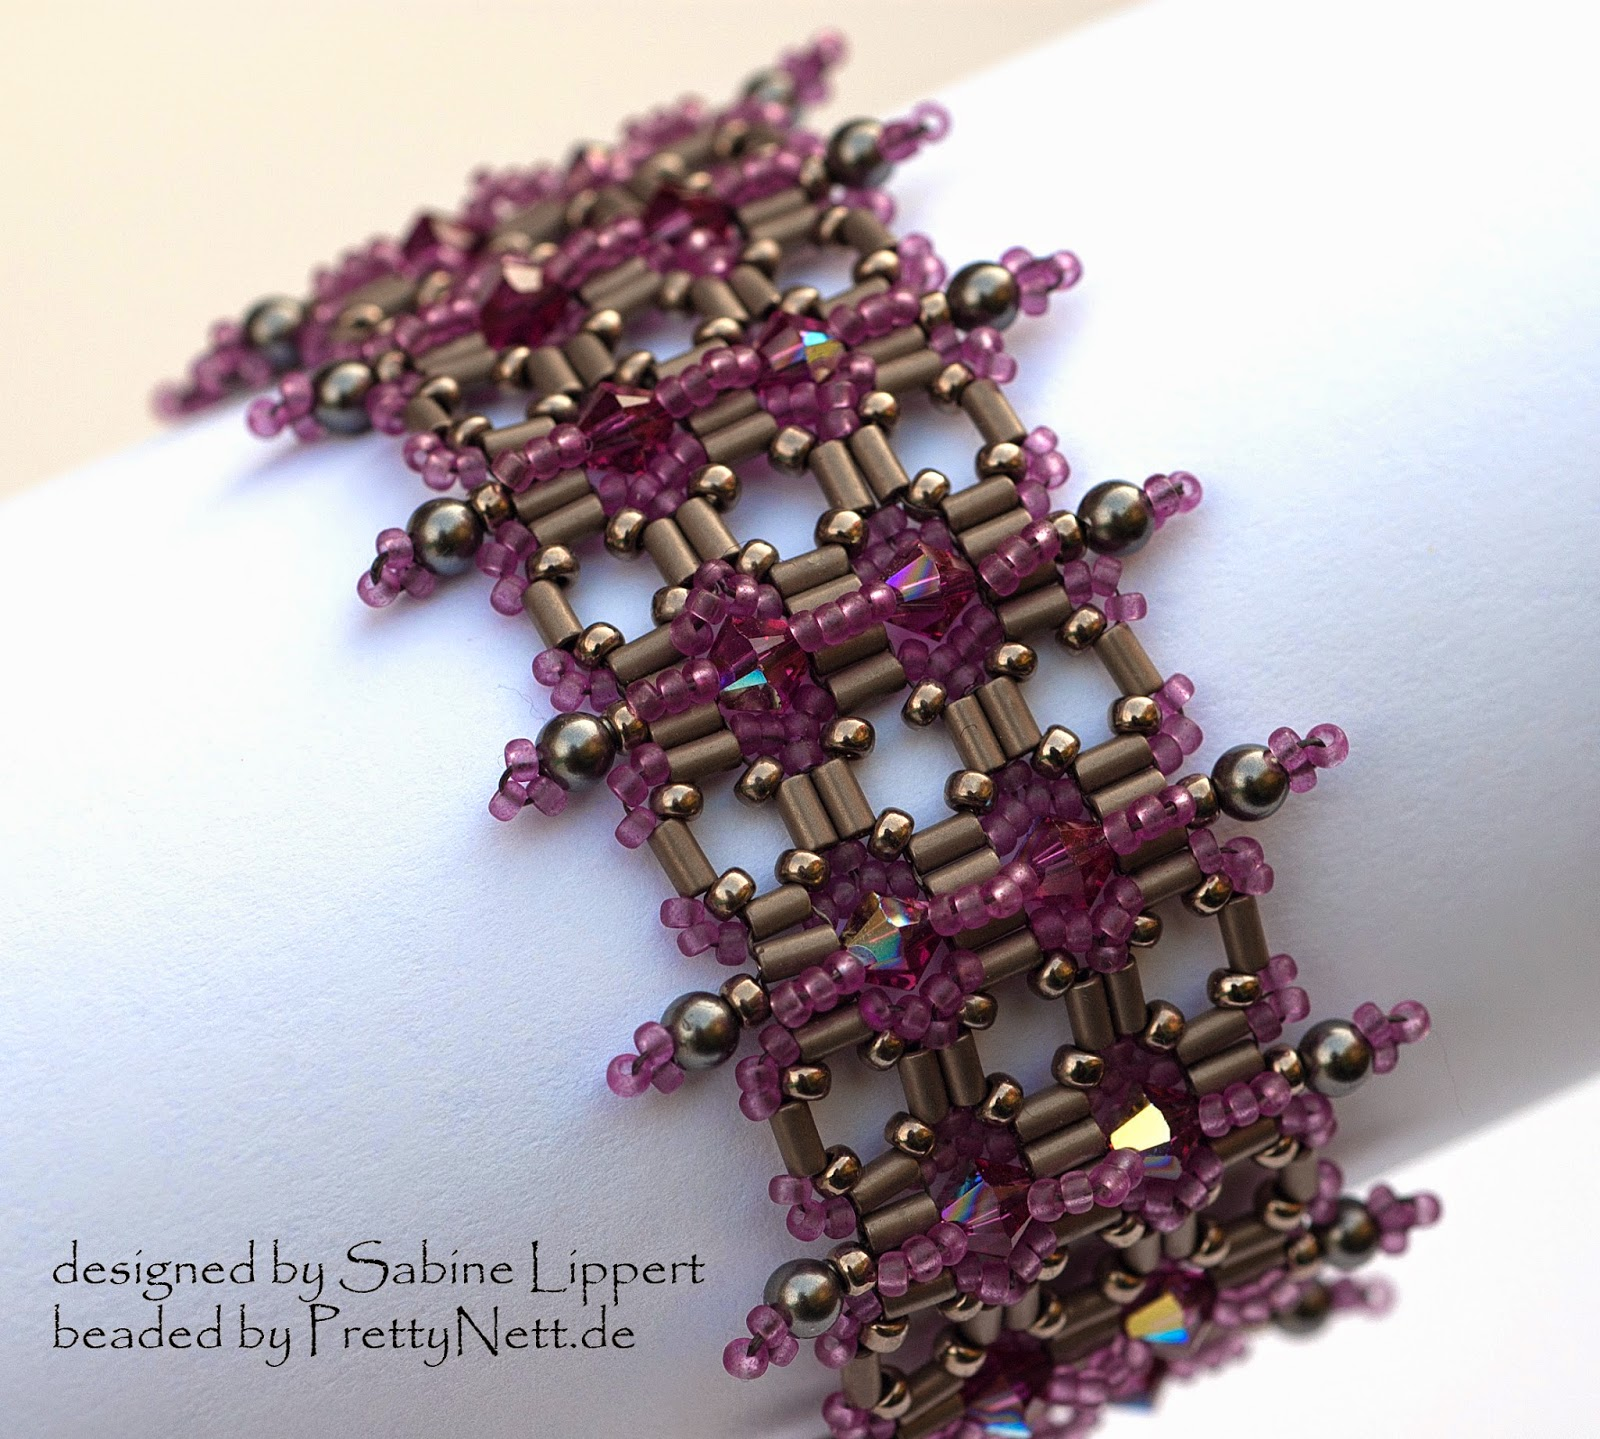 Bracelet Armbad Vertikal in lila beaded by PrettyNett.de